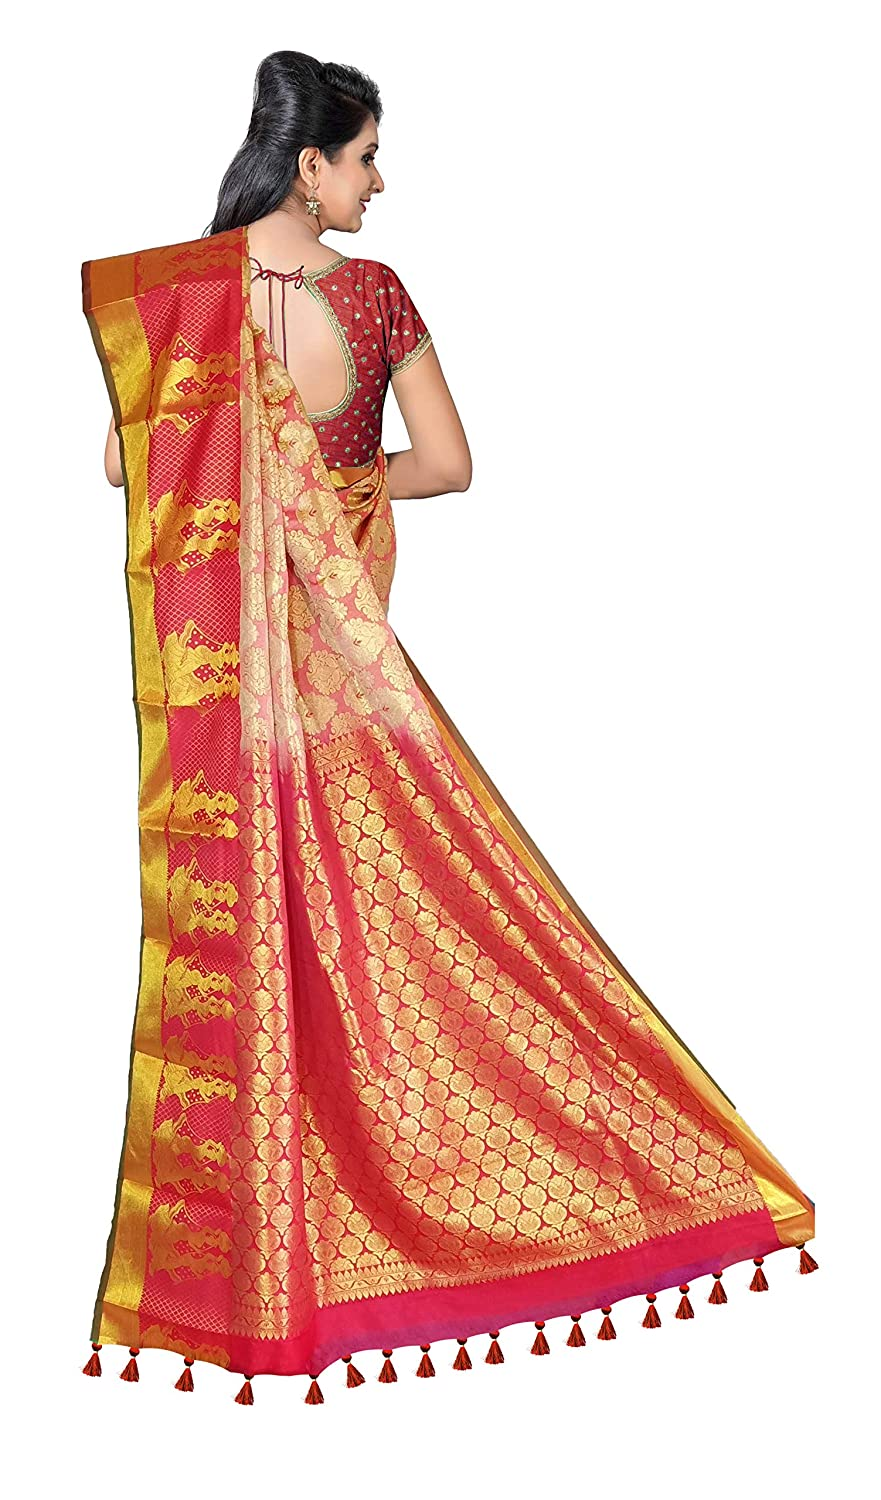 ca22b53802735f Amazon.com: VFCollections - Kanchipuram Pattu Silk Saree - Rose Flowers  Buta All Over with Blouse Piece for Women (Red): Clothing